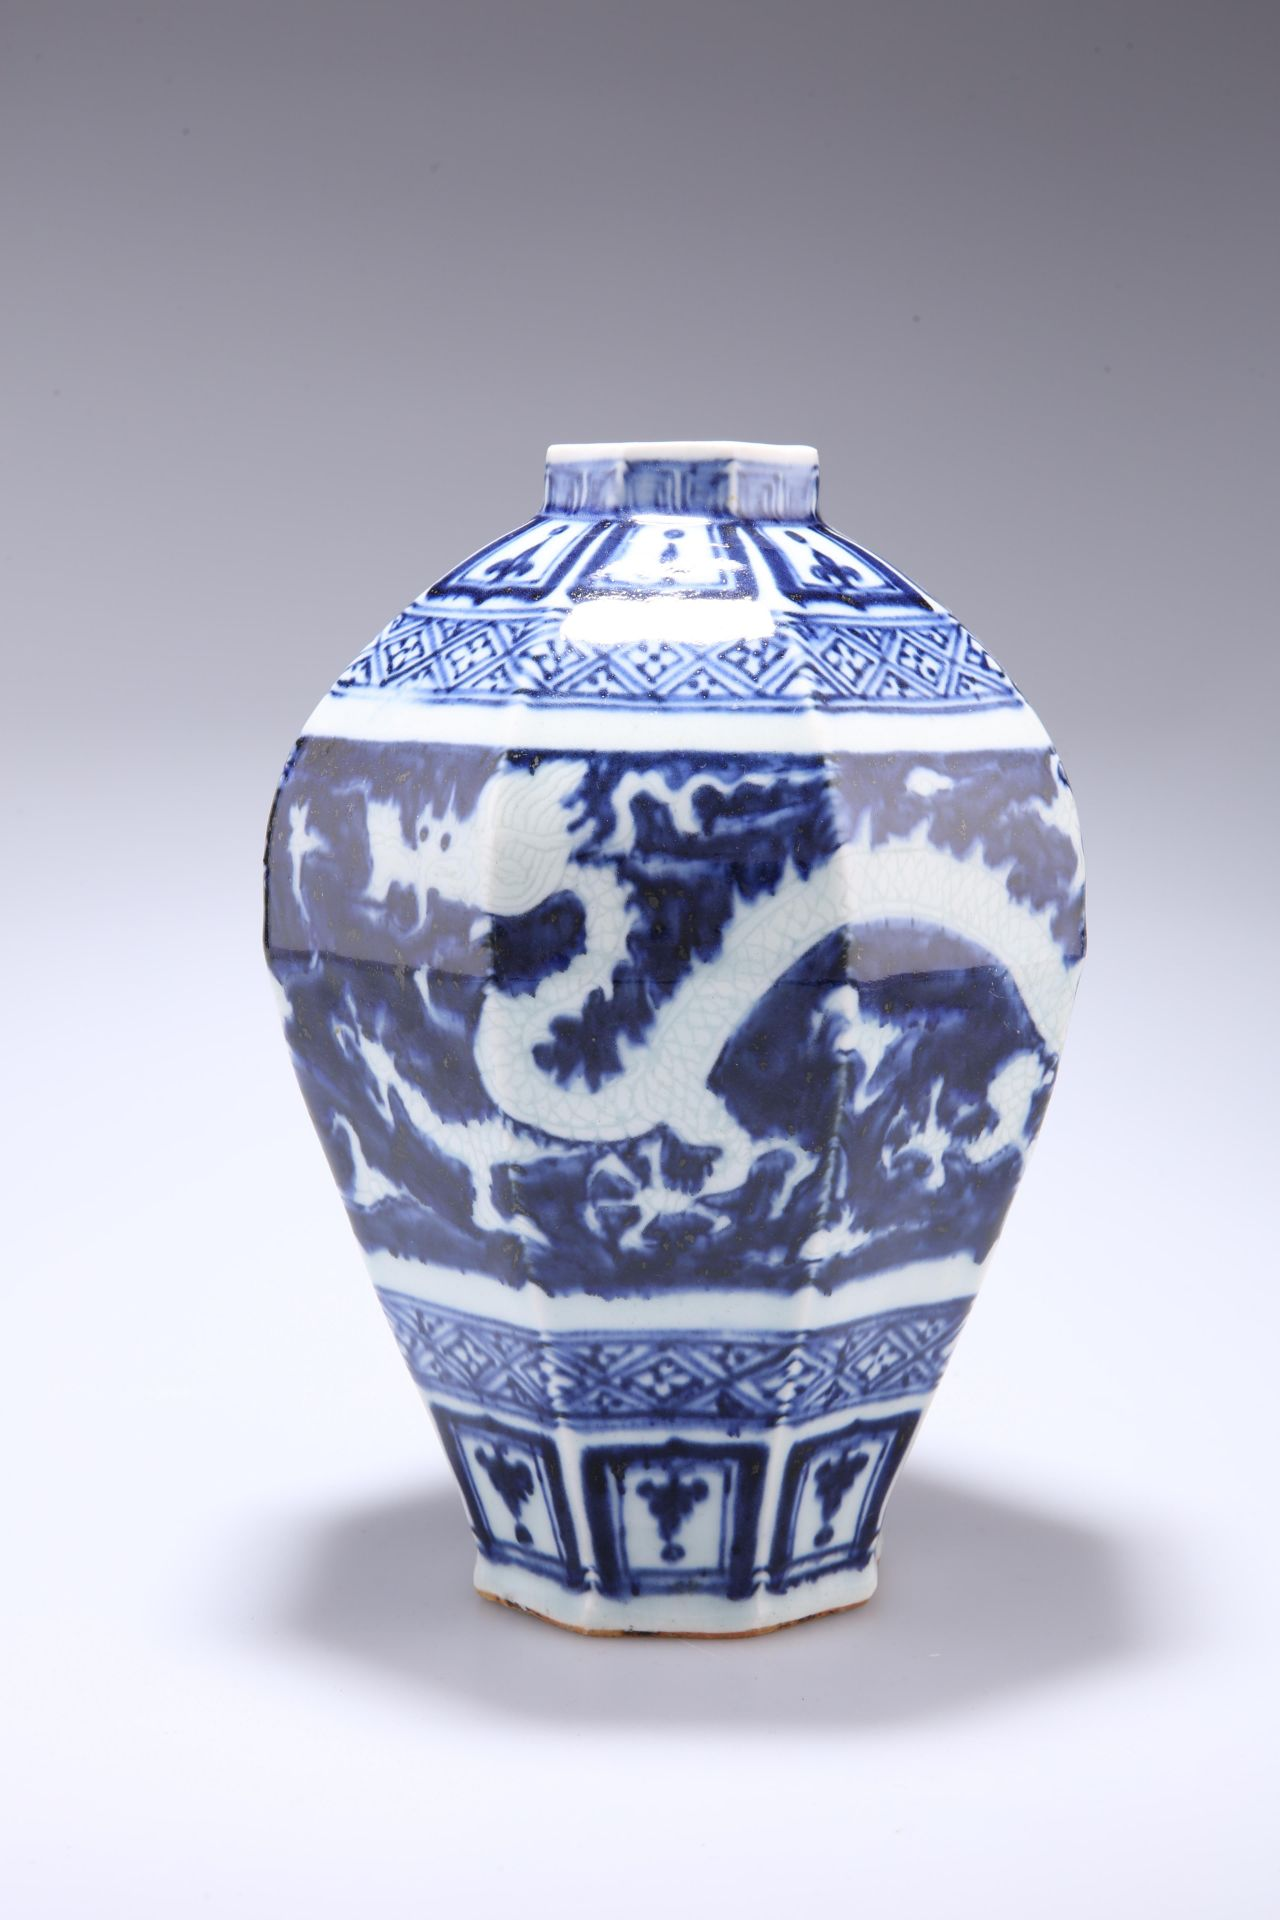 A PROBABLY 19TH CENTURY CHINESE BLUE AND WHITE VASE, inverted panelled baluster form, decorated with